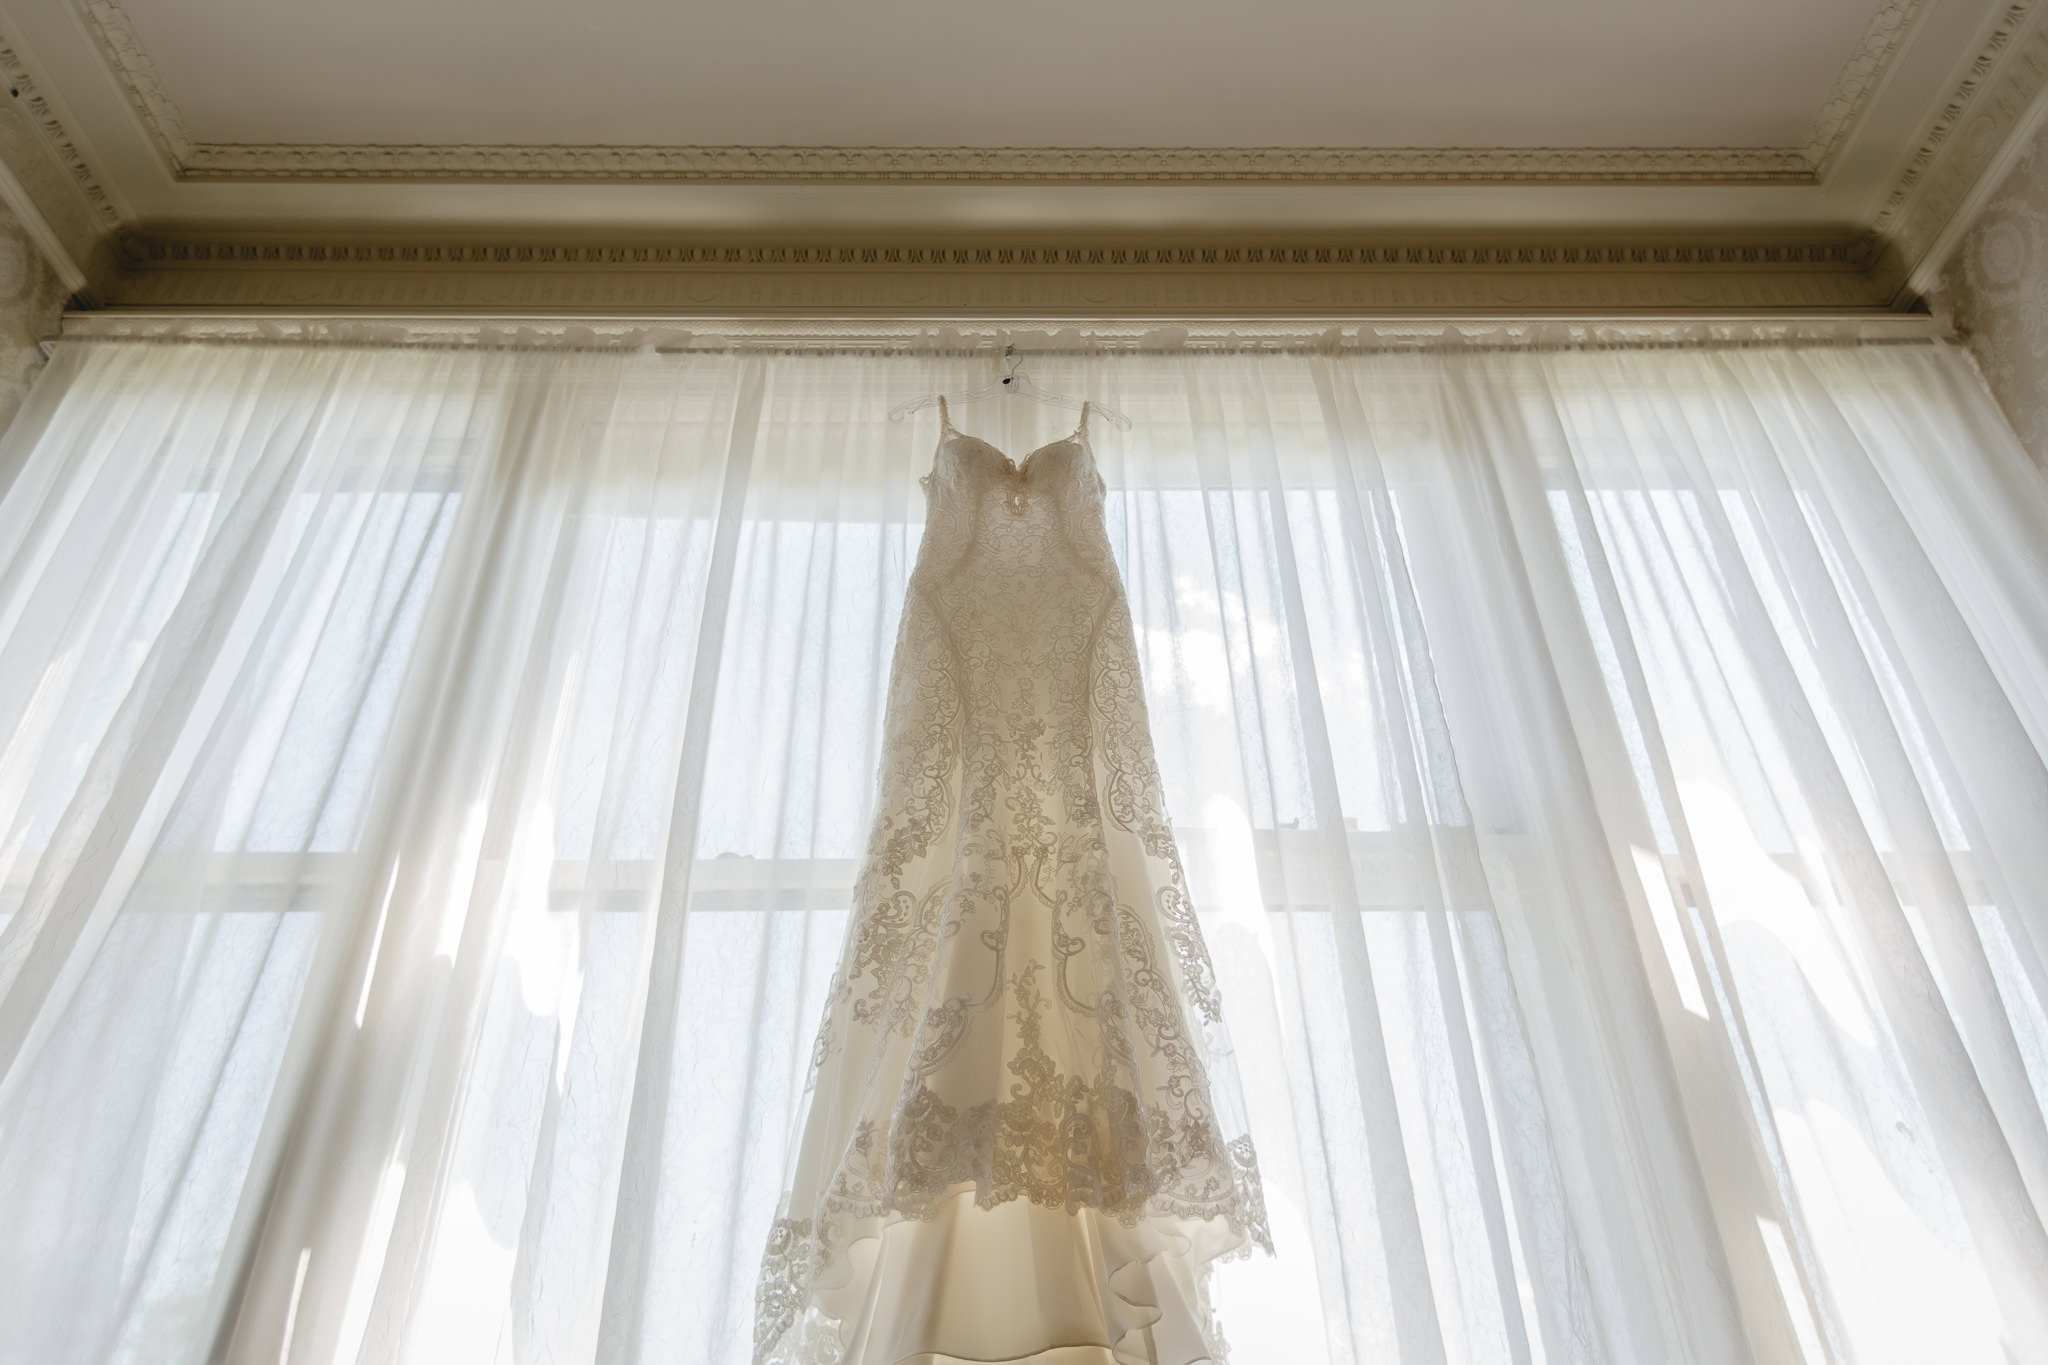 Bride's lace dress hanging in a window inside Linden Hall mansion